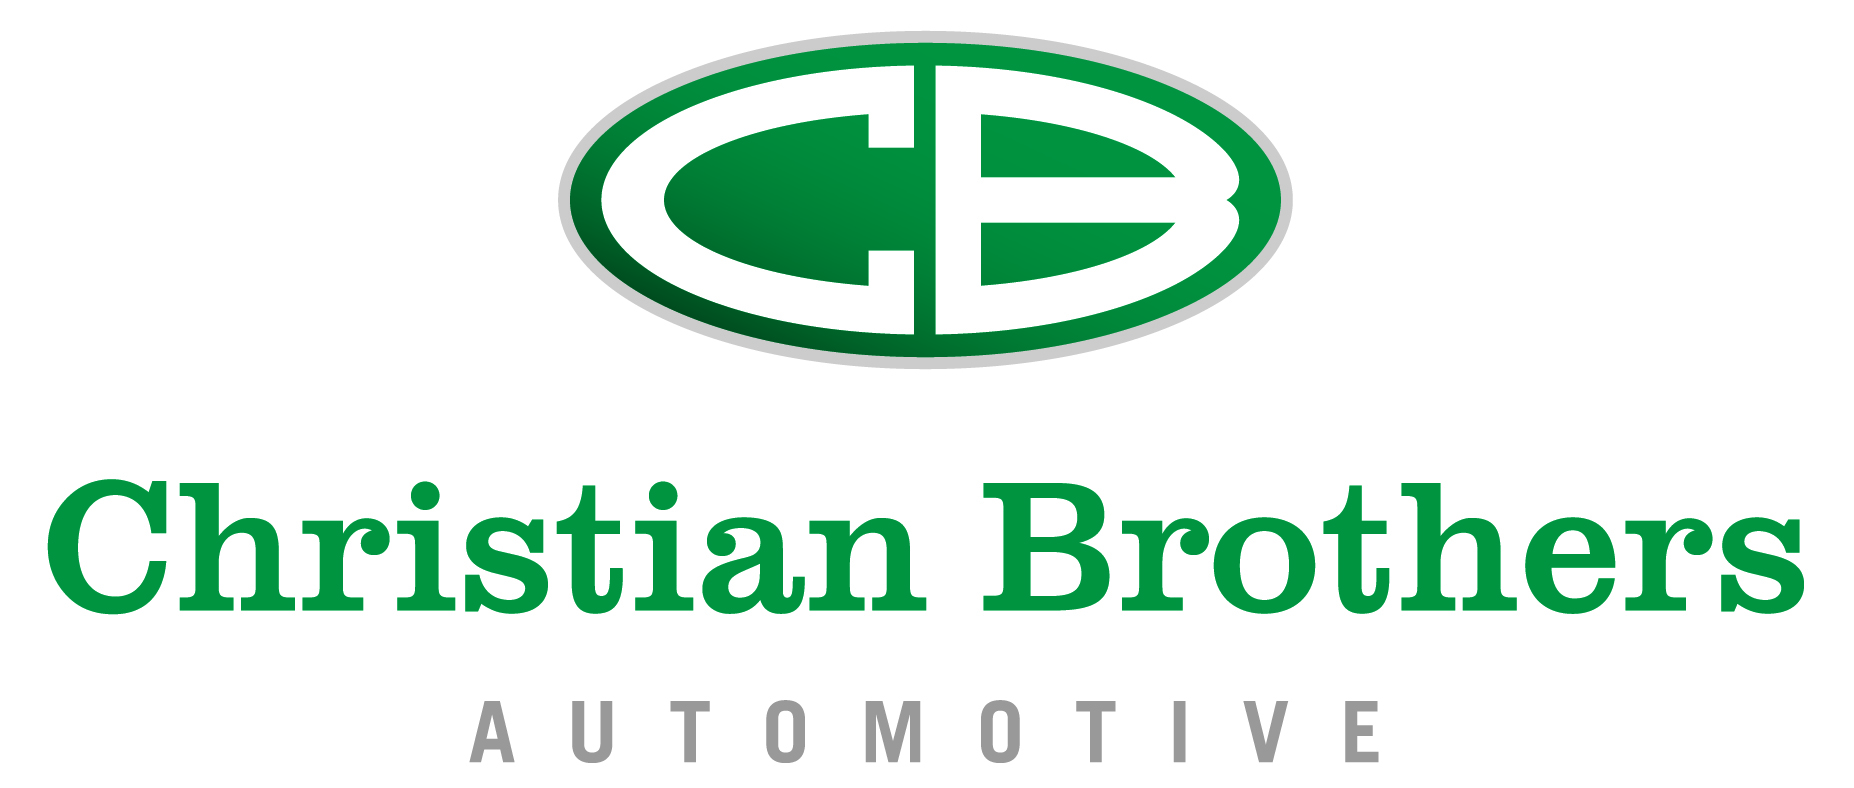 Christian Brothers Automotive Vista Ridge